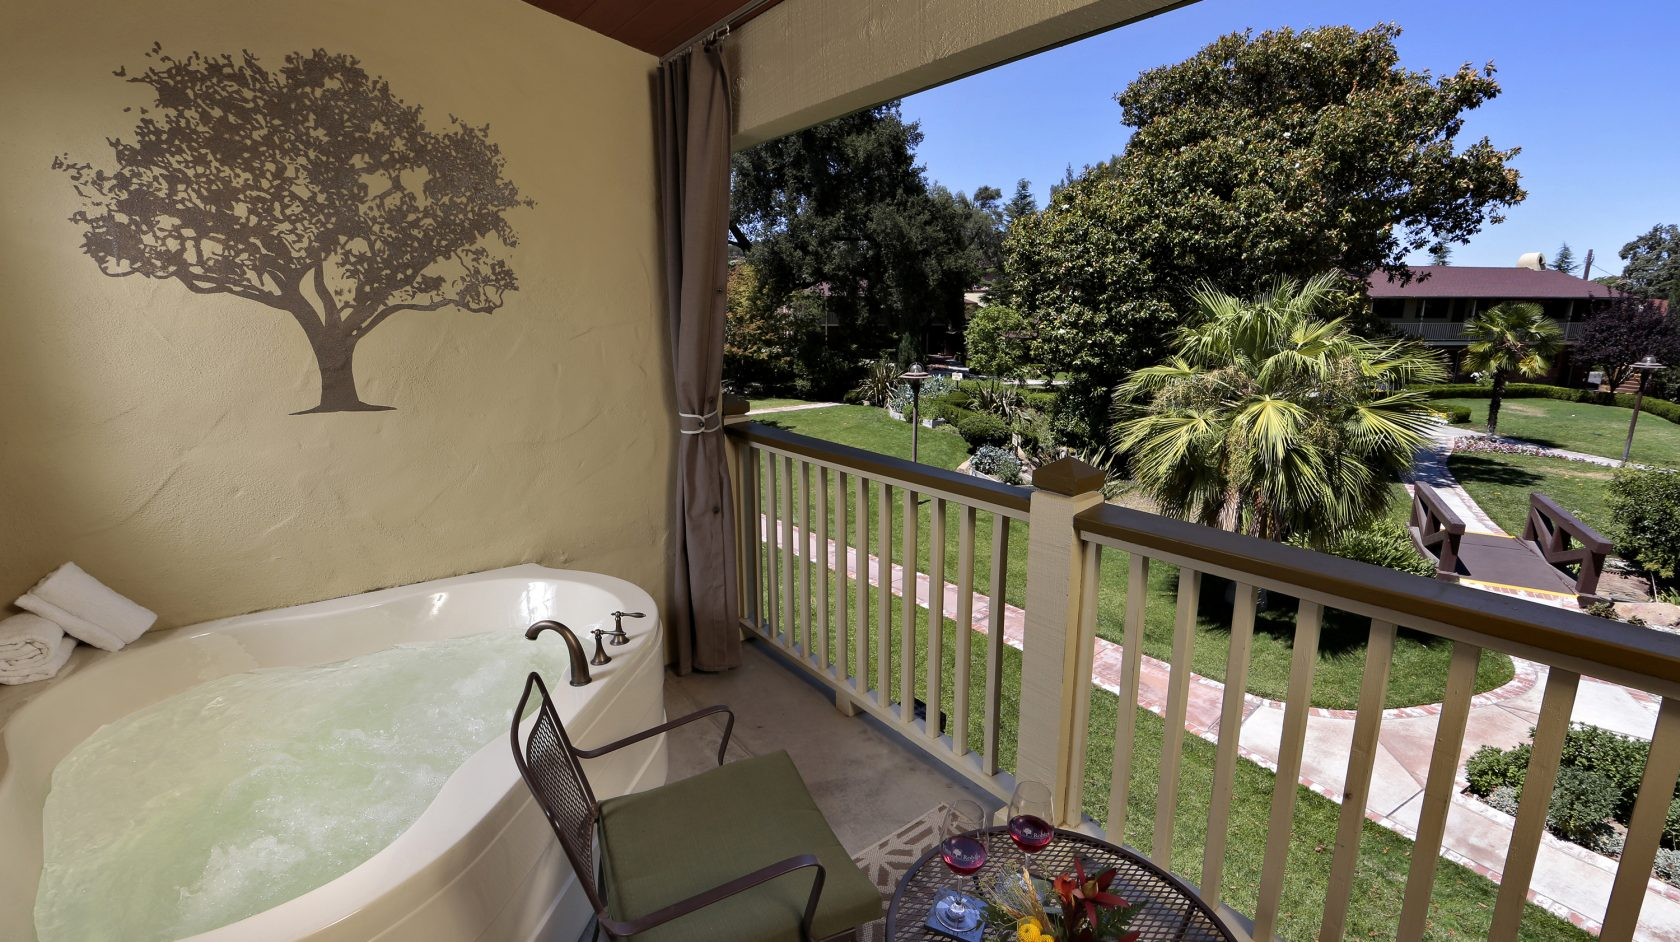 Private Mineral Spa on Balcony overlooking Paso Robles Inn Gardens